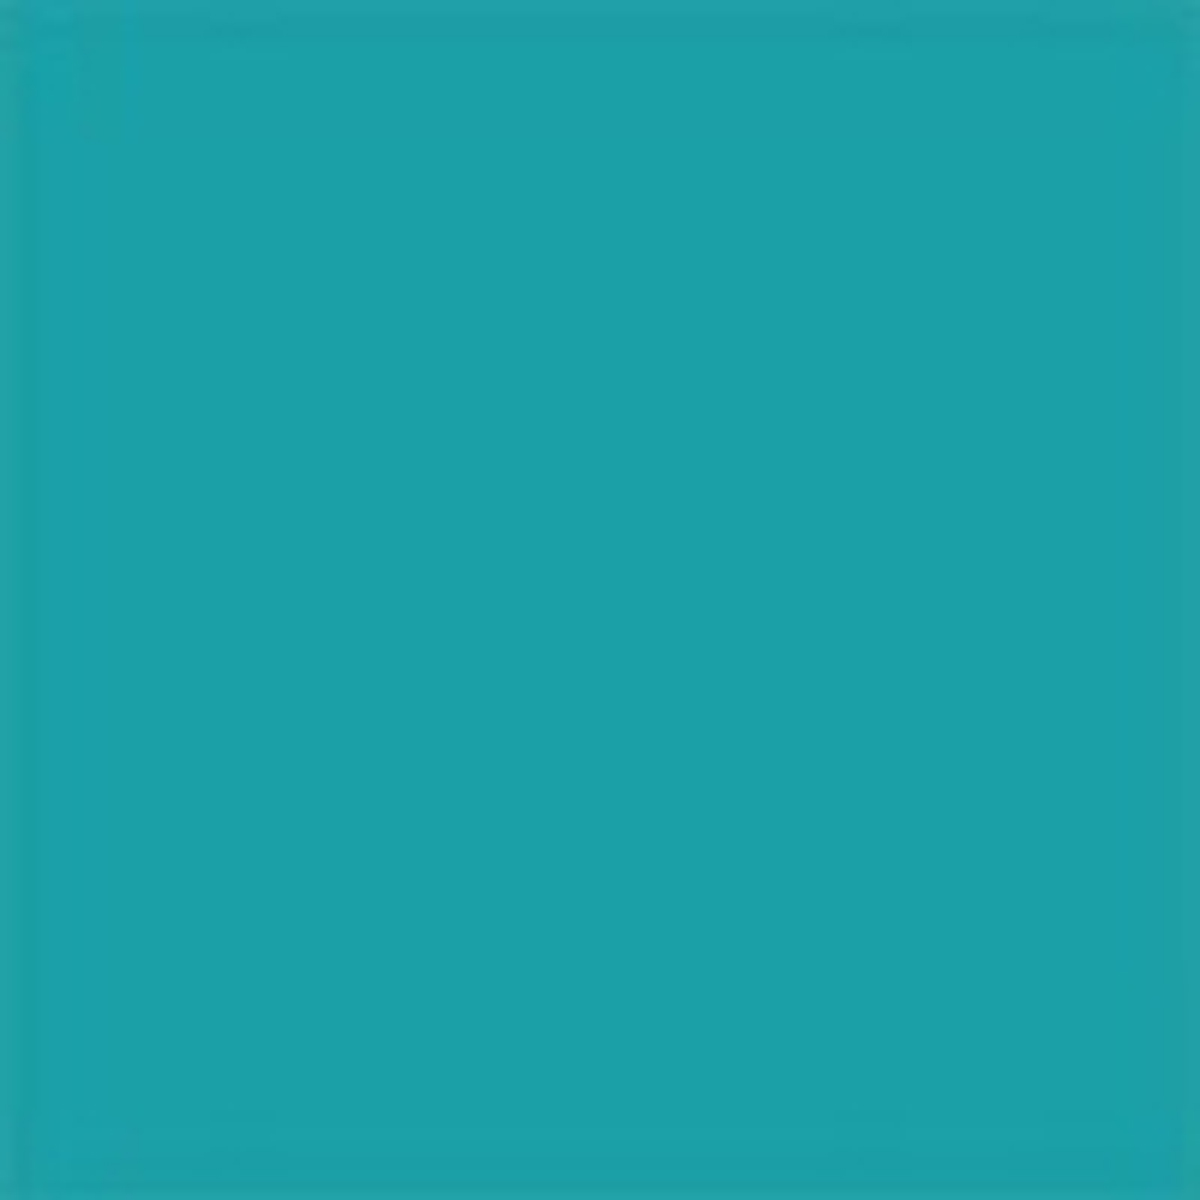 RAL 5018 Turquoise